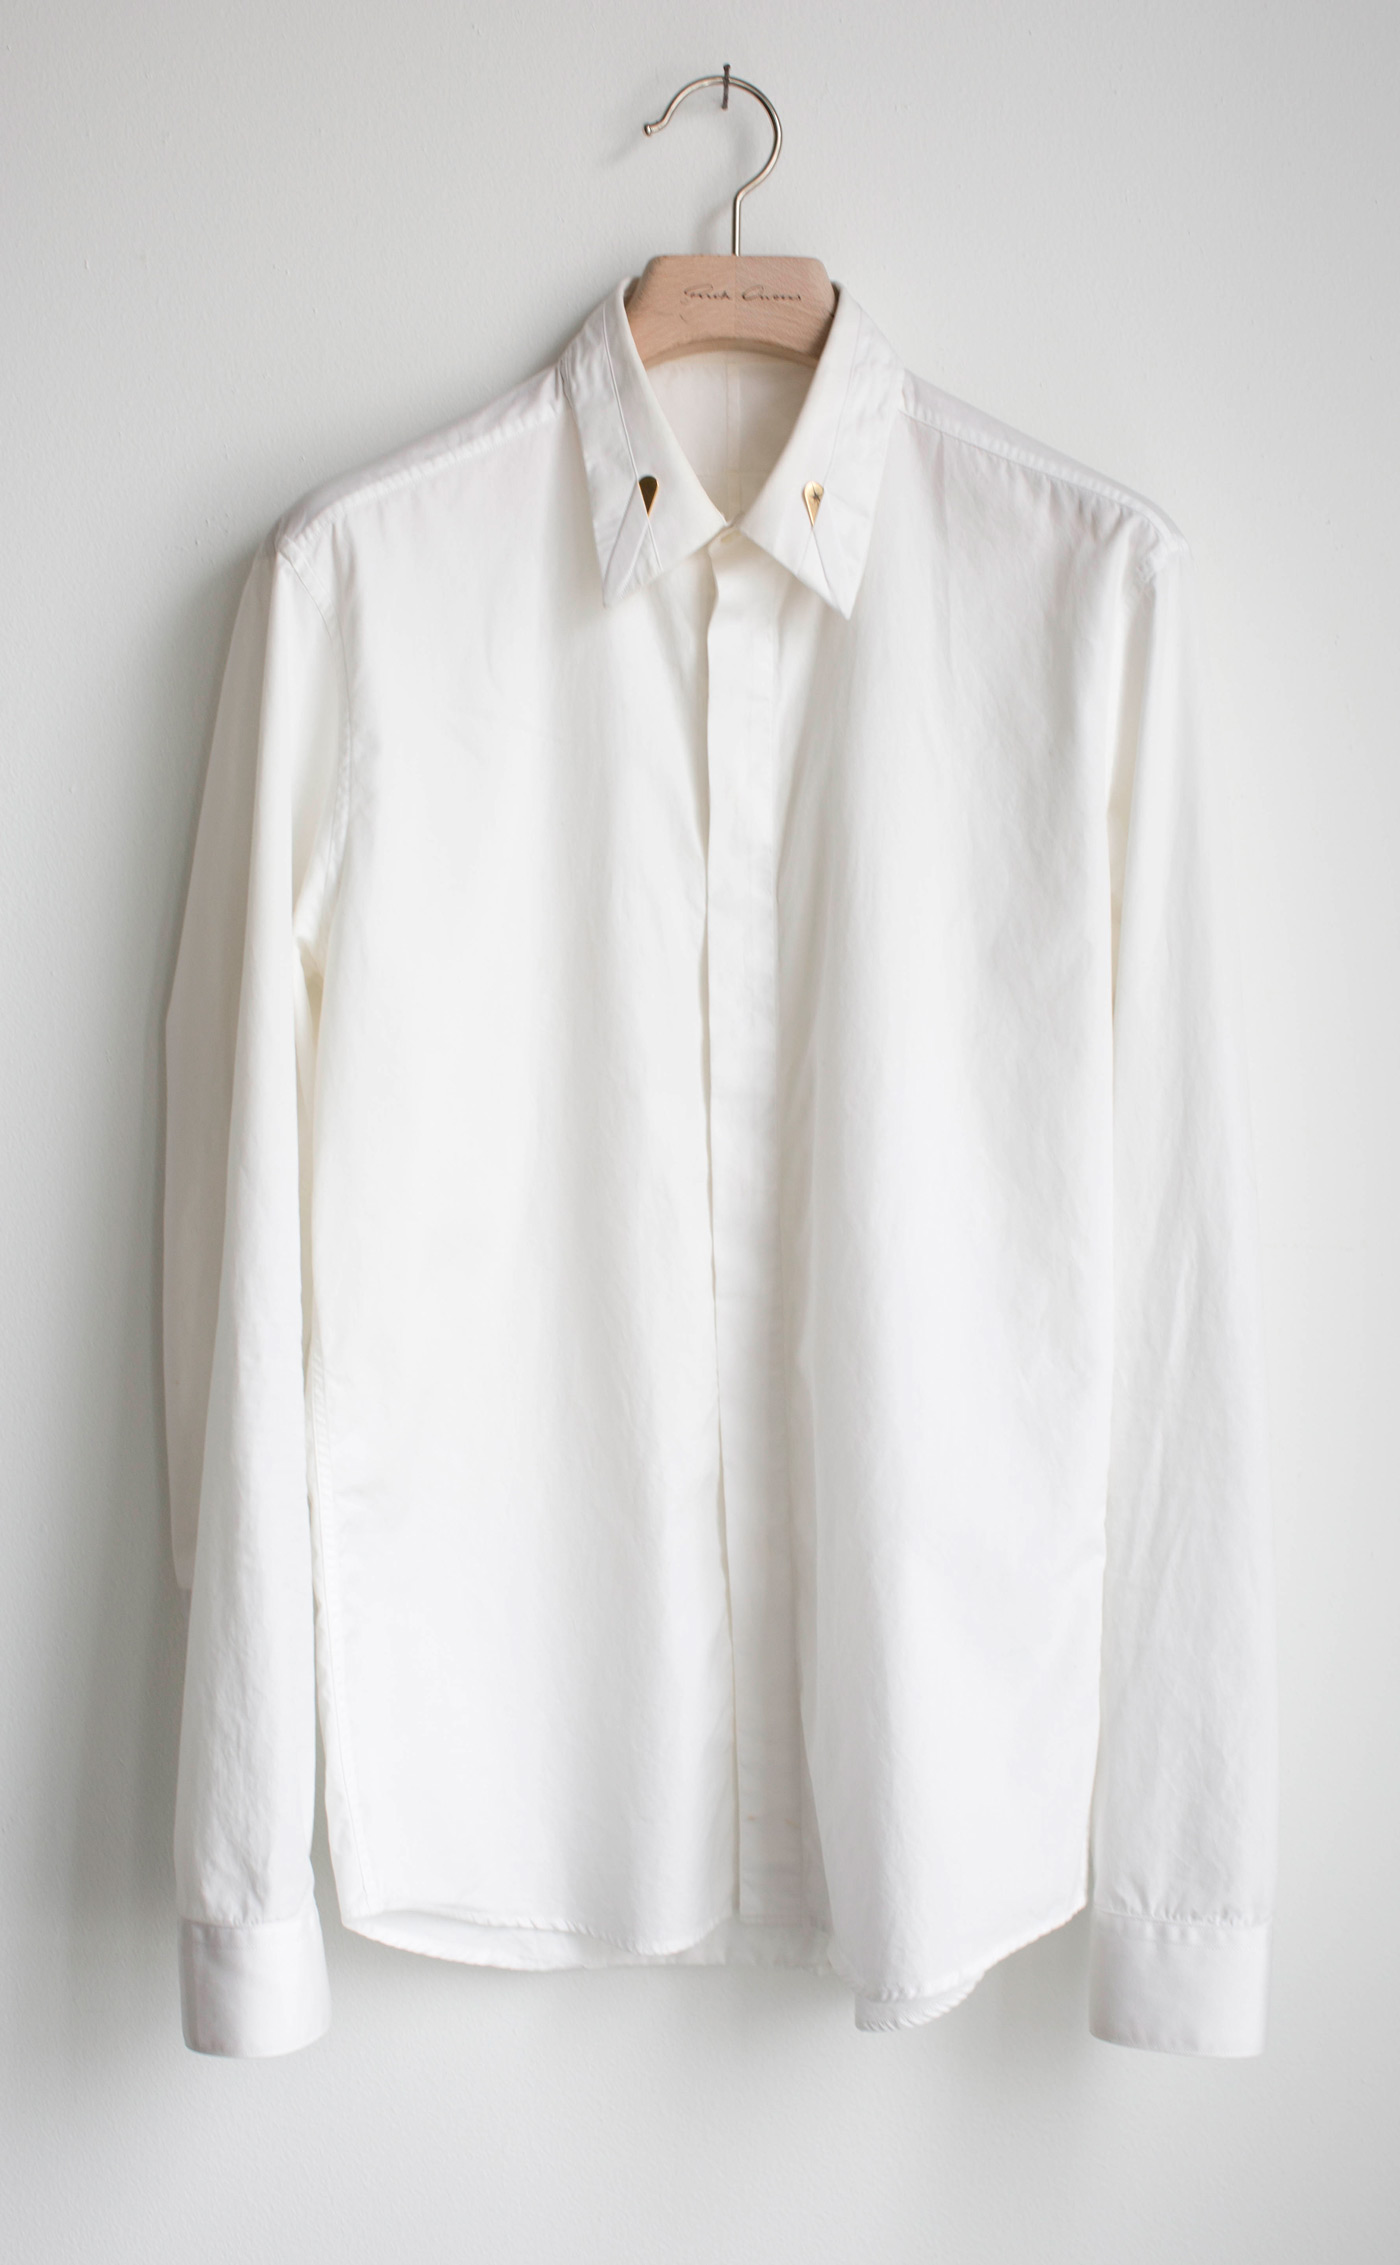 Givenchy White Gold Star Collar Pin Button Up Size M Shirts